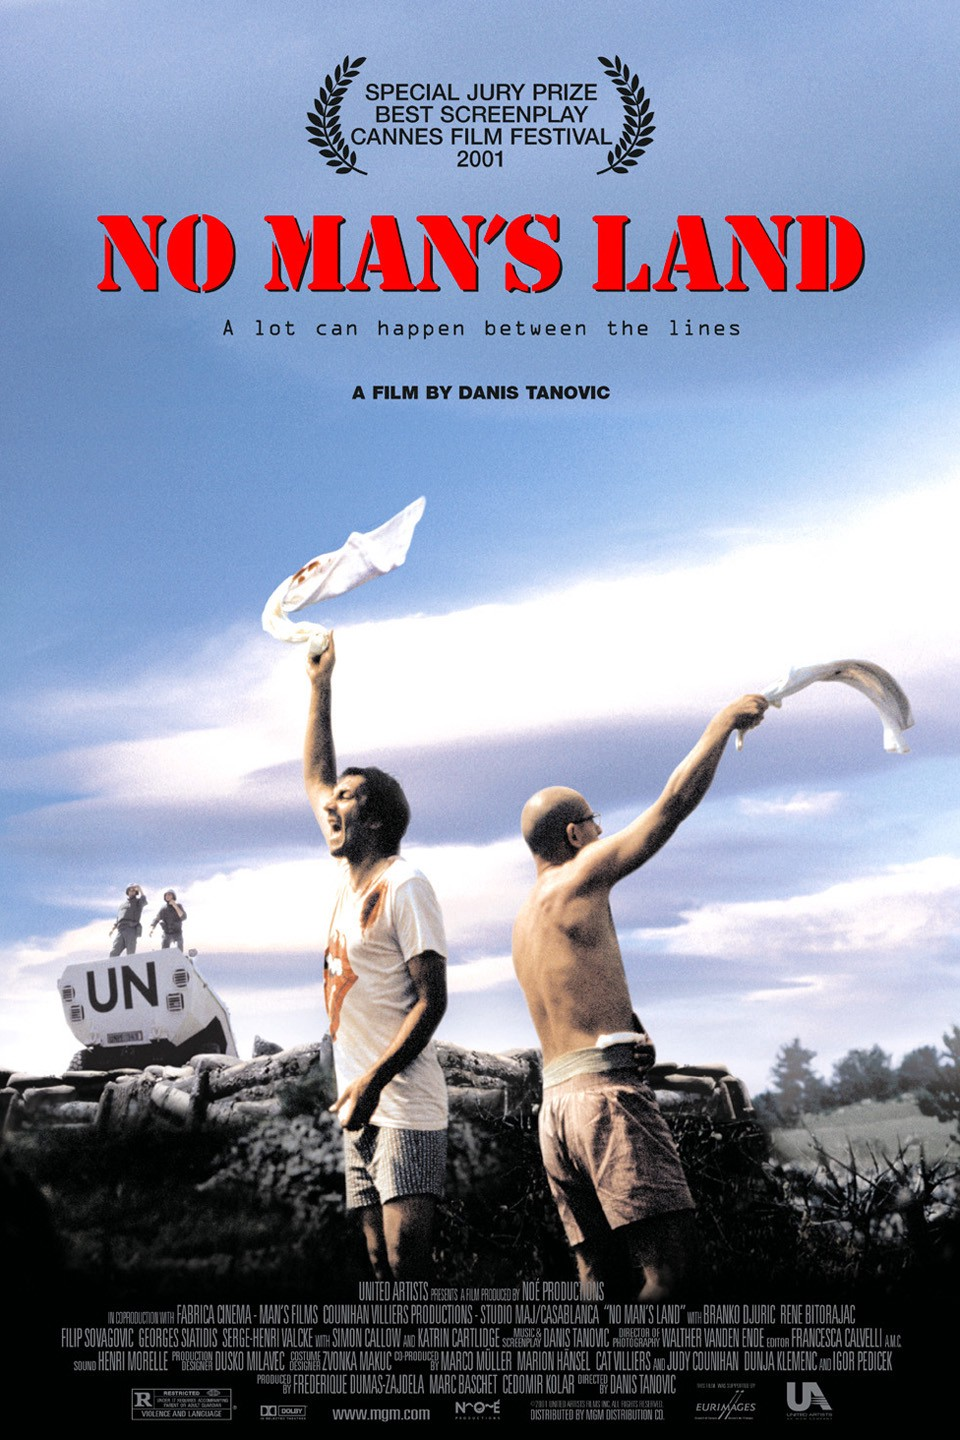 Poster for No Man's Land